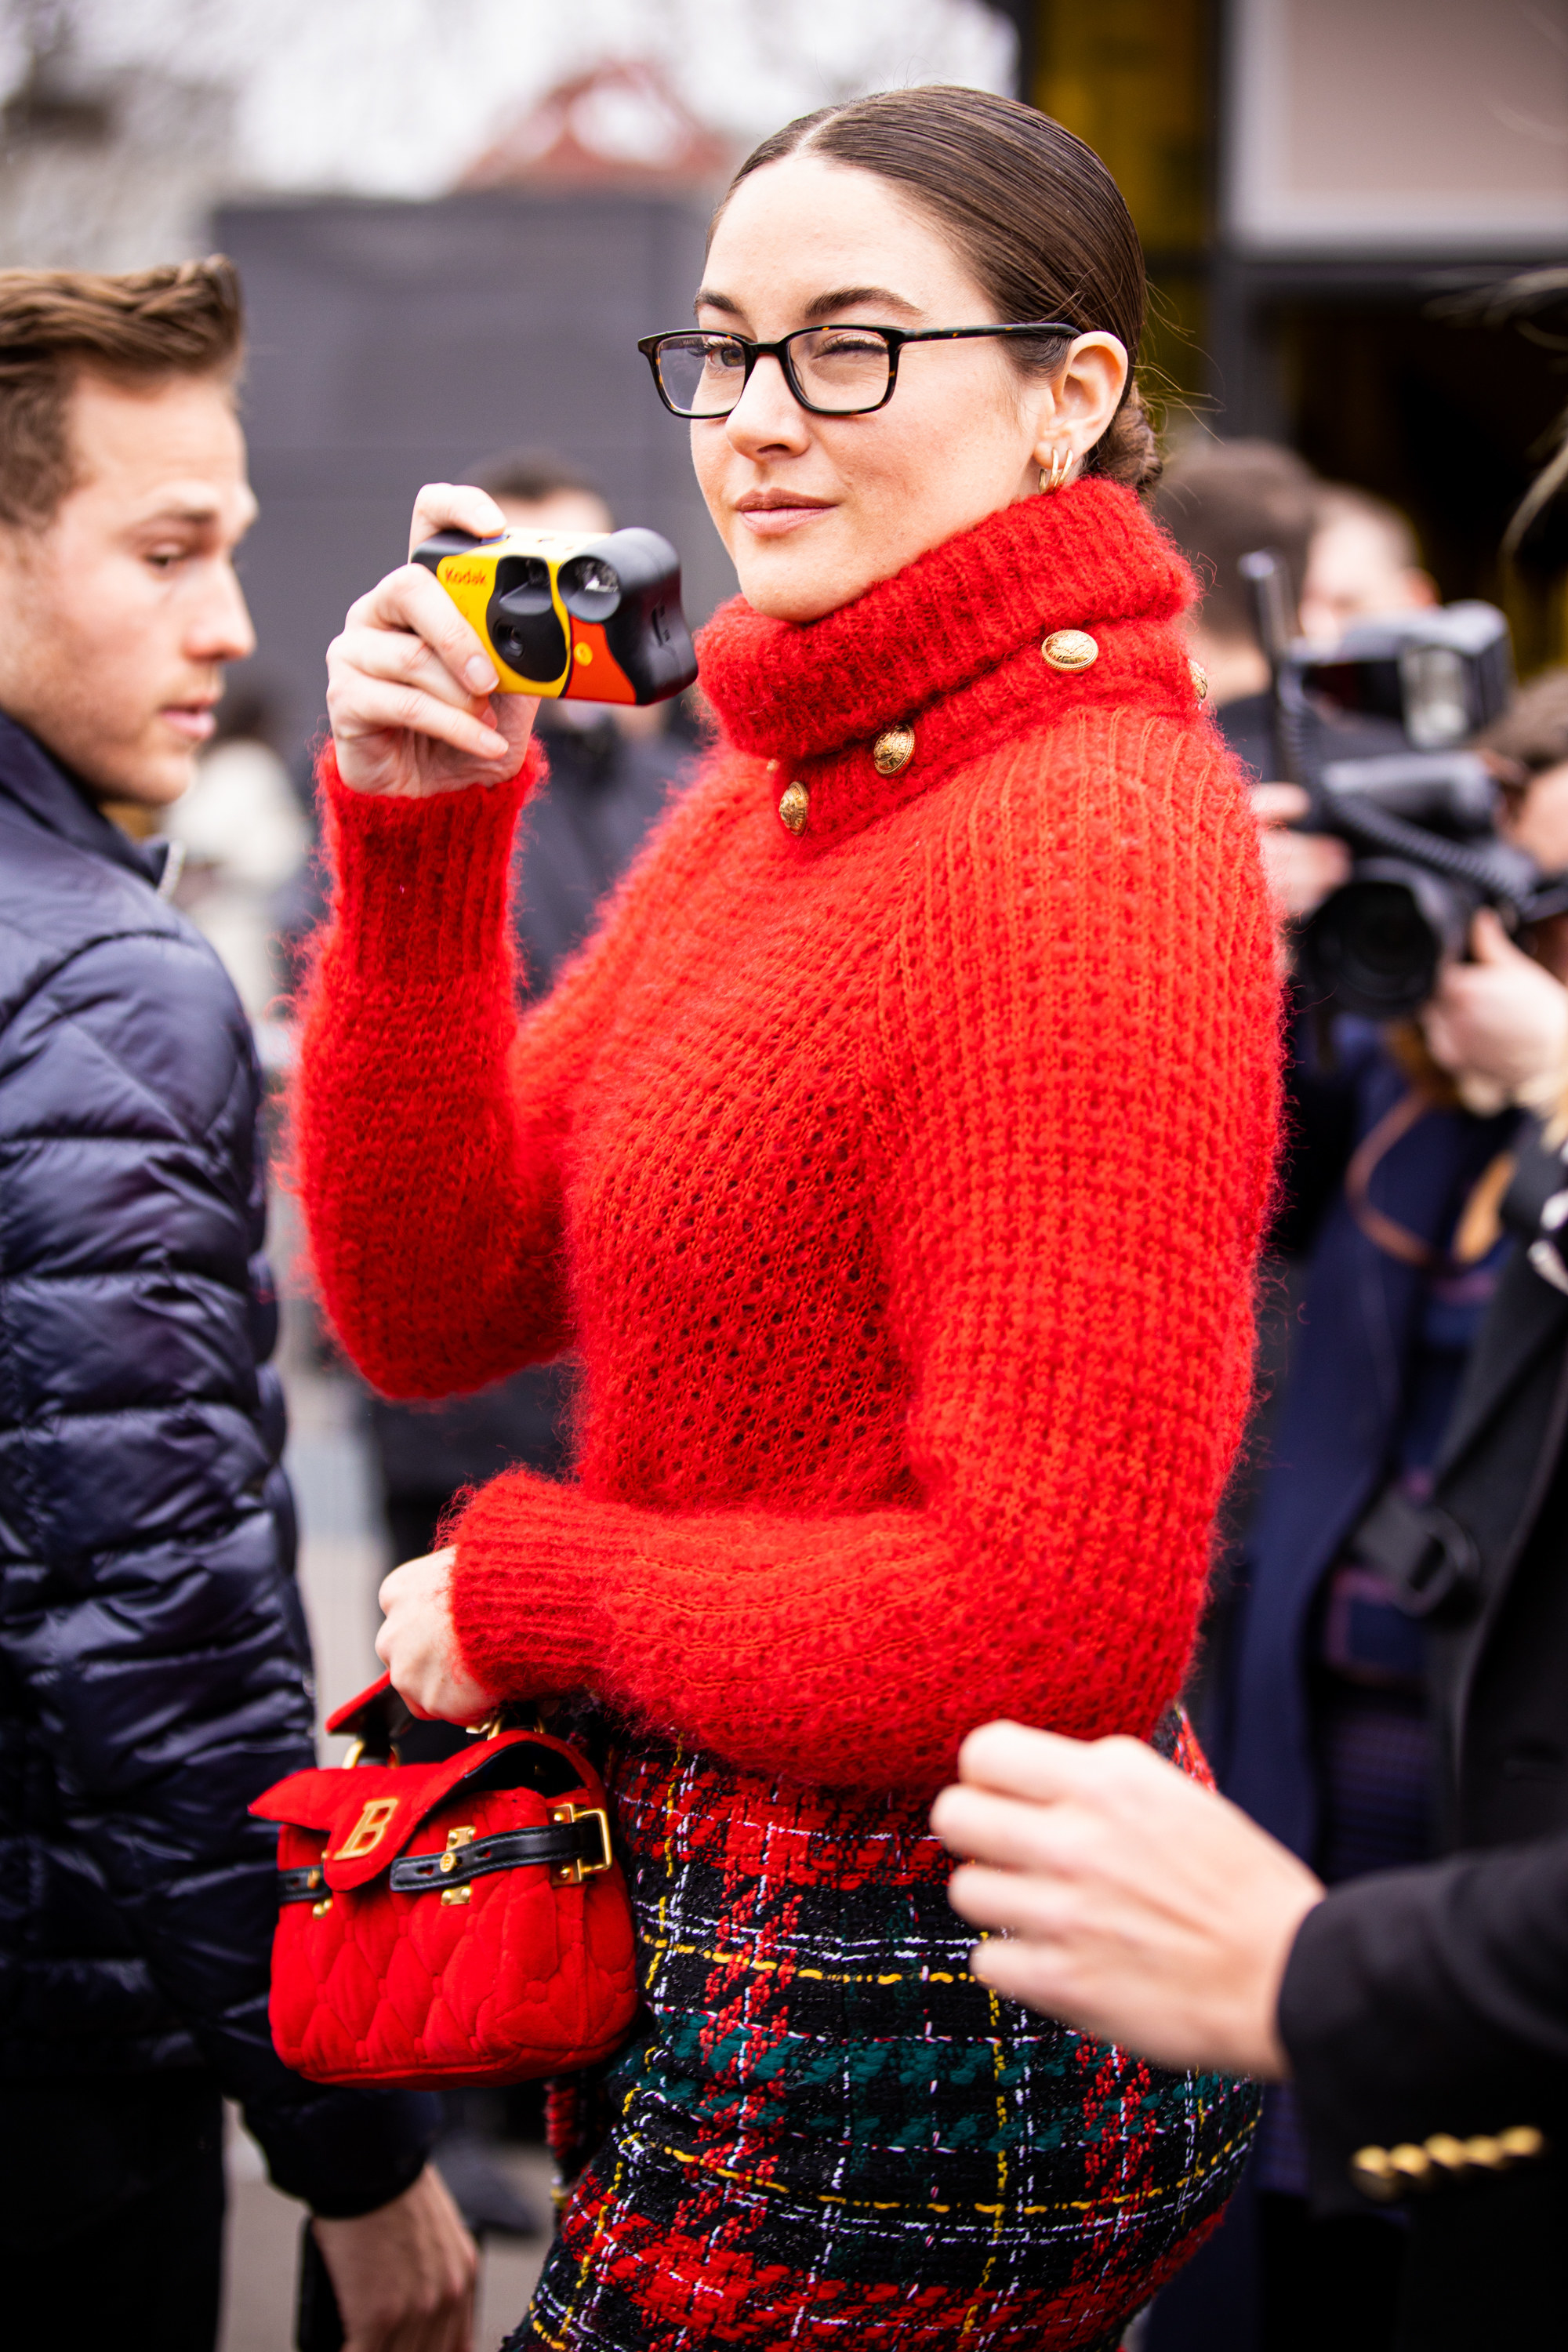 Shailene Woodley is photographed while taking a picture with a disposable camera in Paris, France